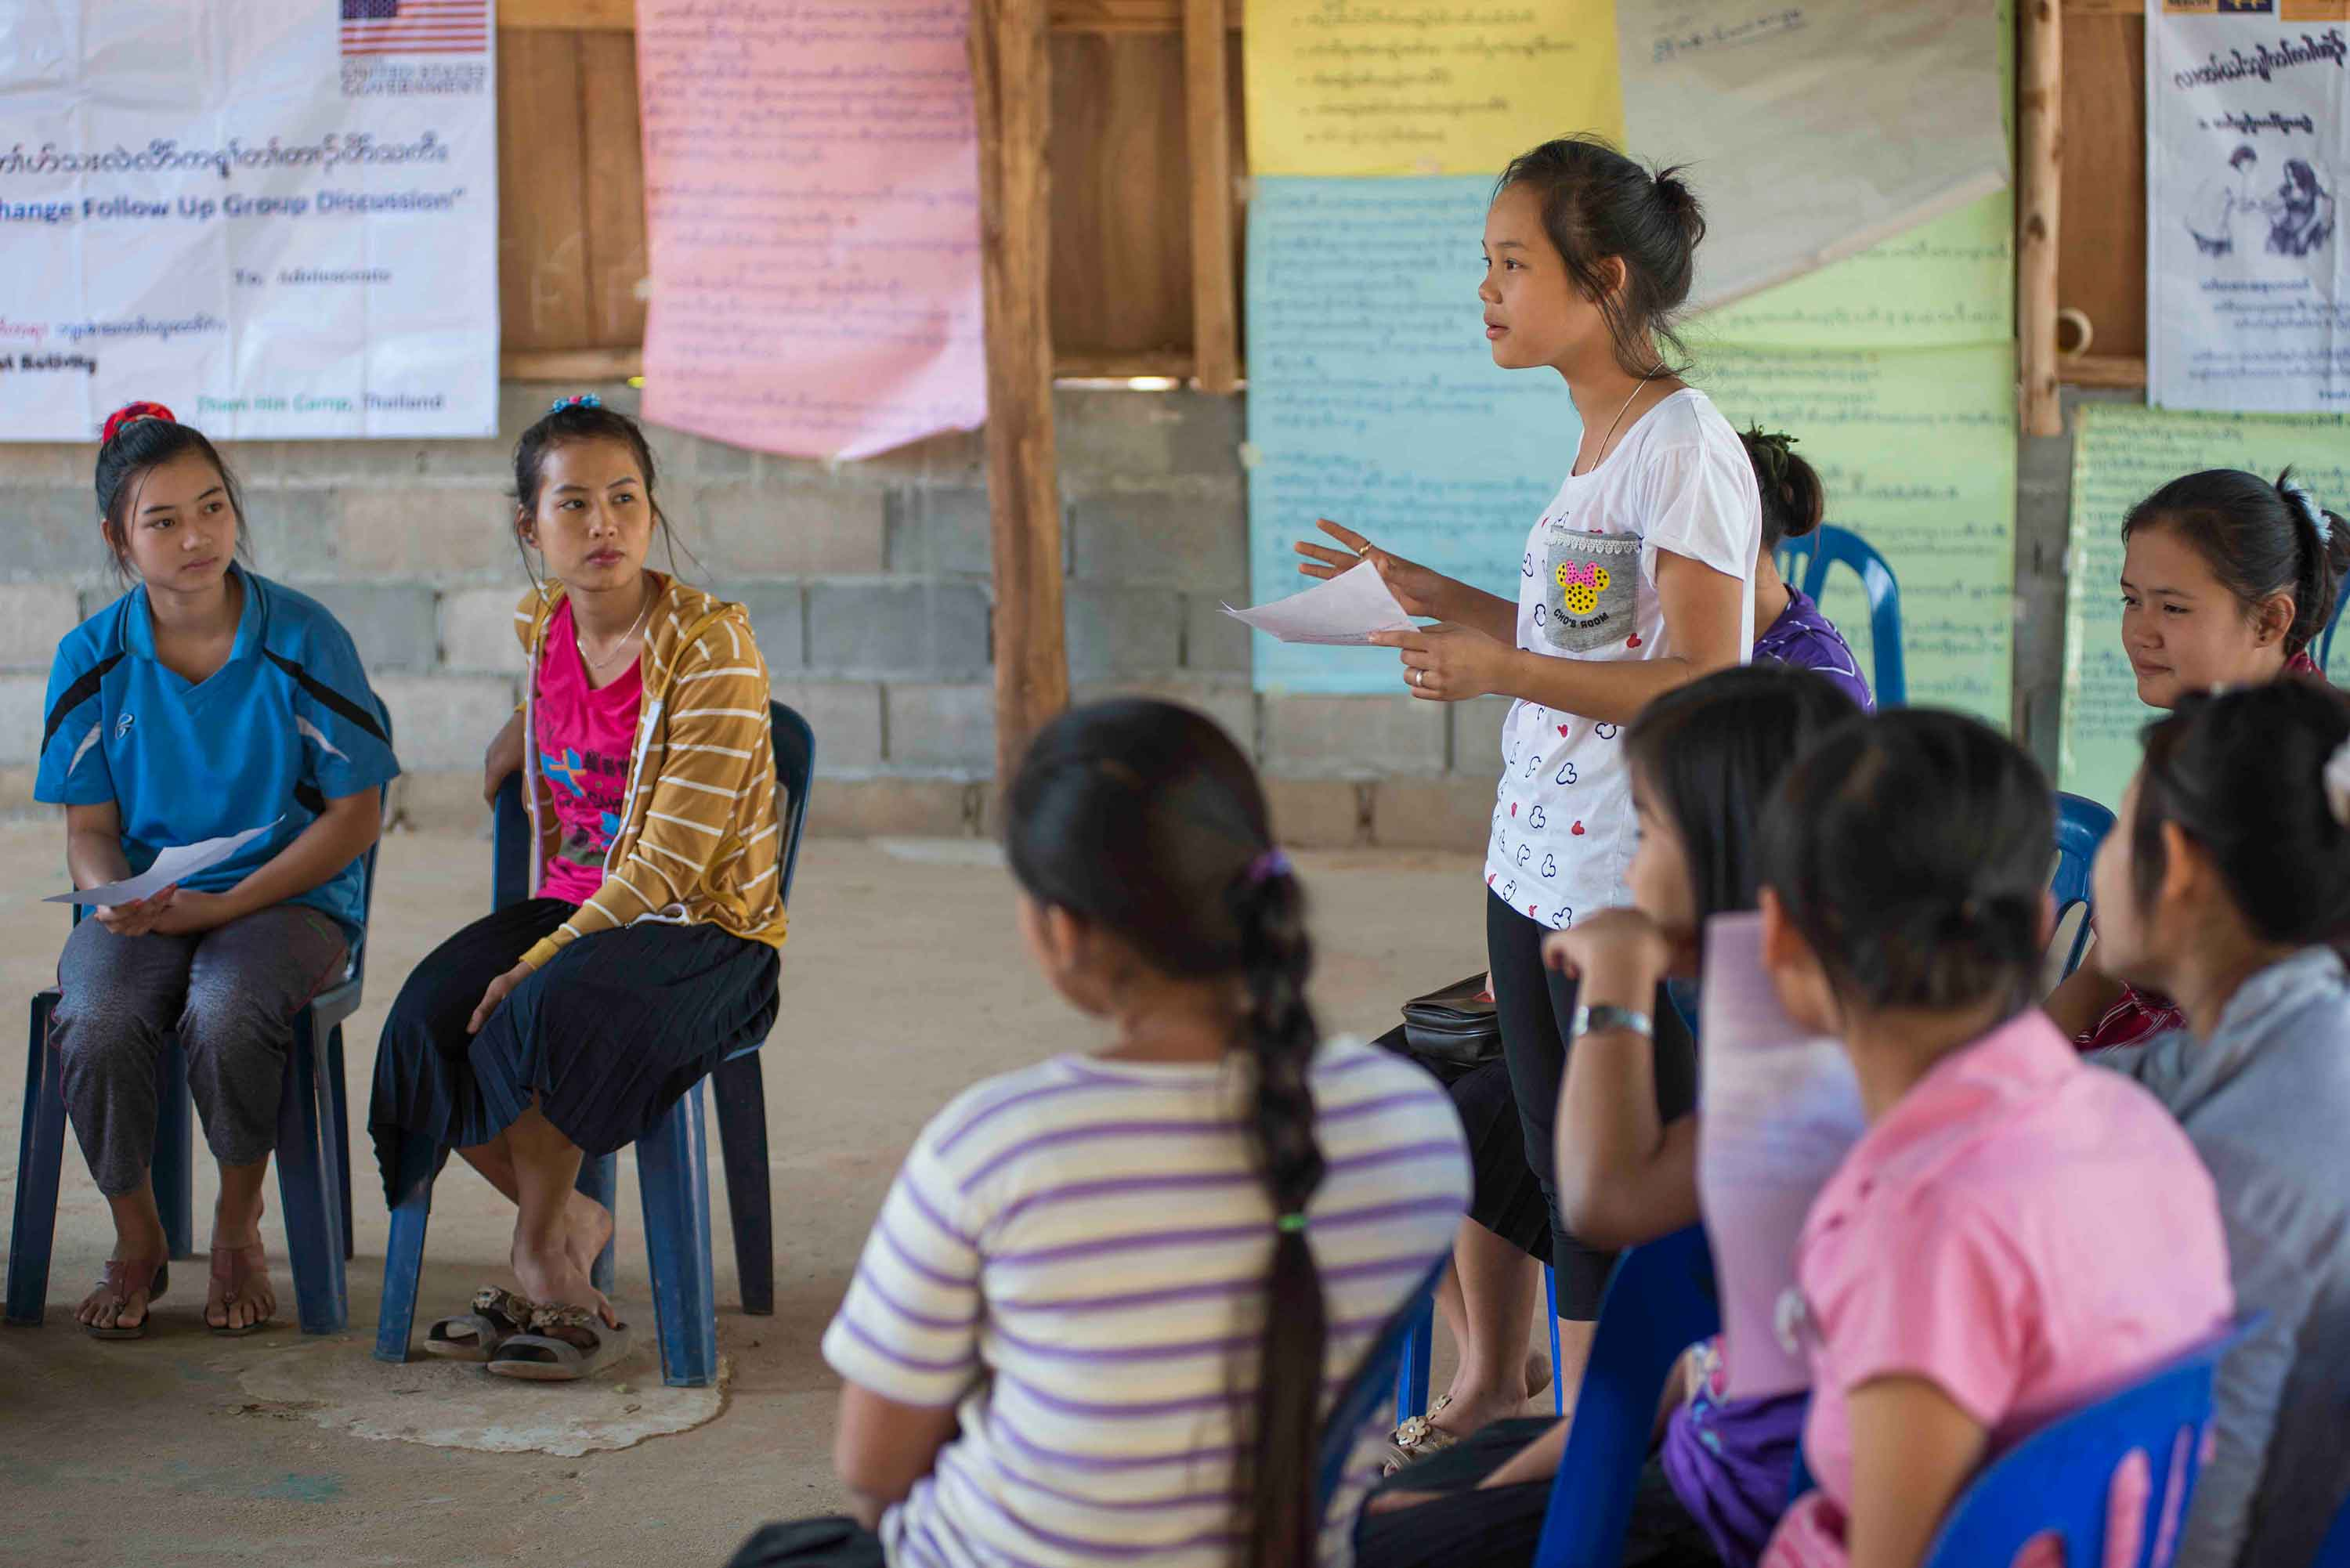 Youth girls attending an IRC cultural education workshop in Thailand